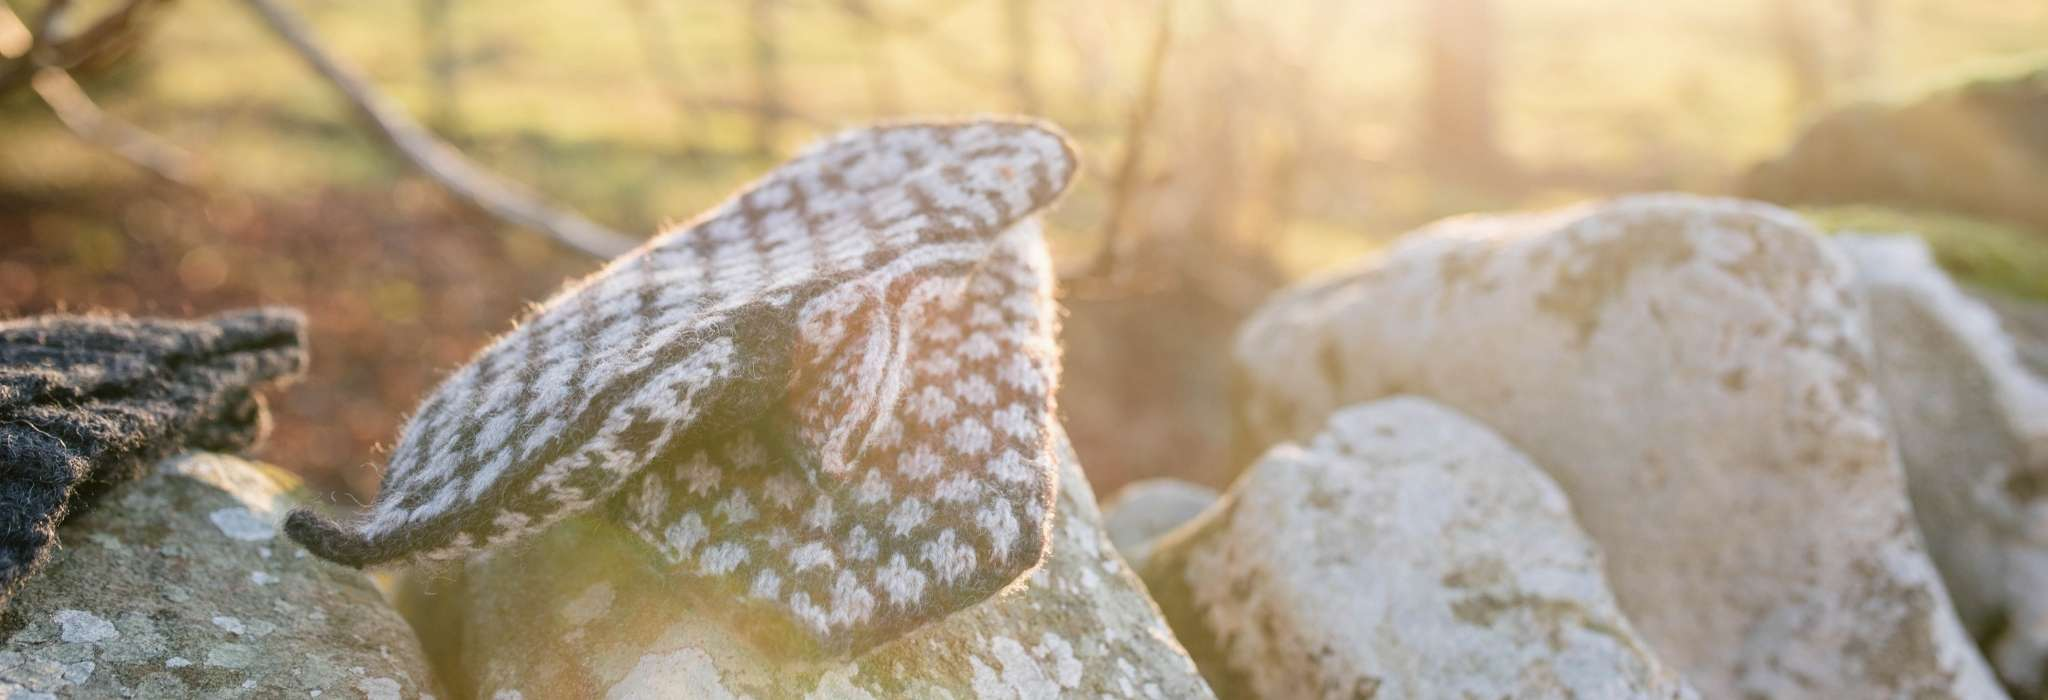 A pair of dark and cream colourwork mittens lie on top of each other, overlapping. They are draped on the top of a stone wall, with trees and a sunset out of focus behind.